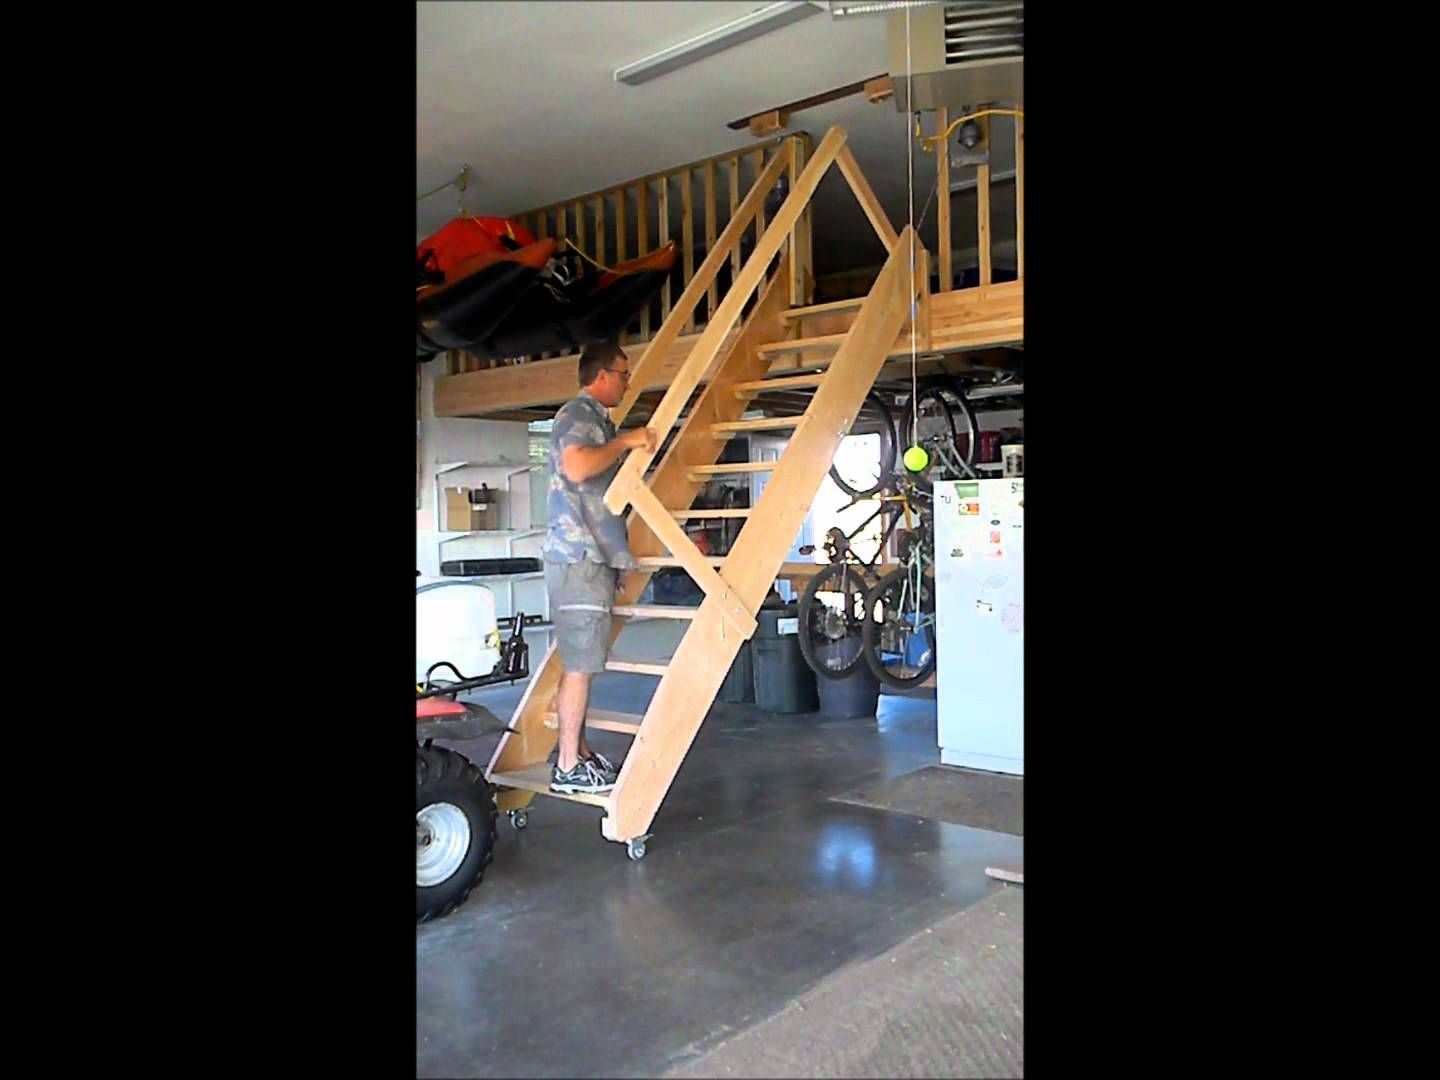 Drop Down Ladders For Garage Attics High Resolution Garage Attic Ladder 12 Garage Attic Stairs Pull Down Attic Renovation Attic Stairs Pull Down Attic Doors